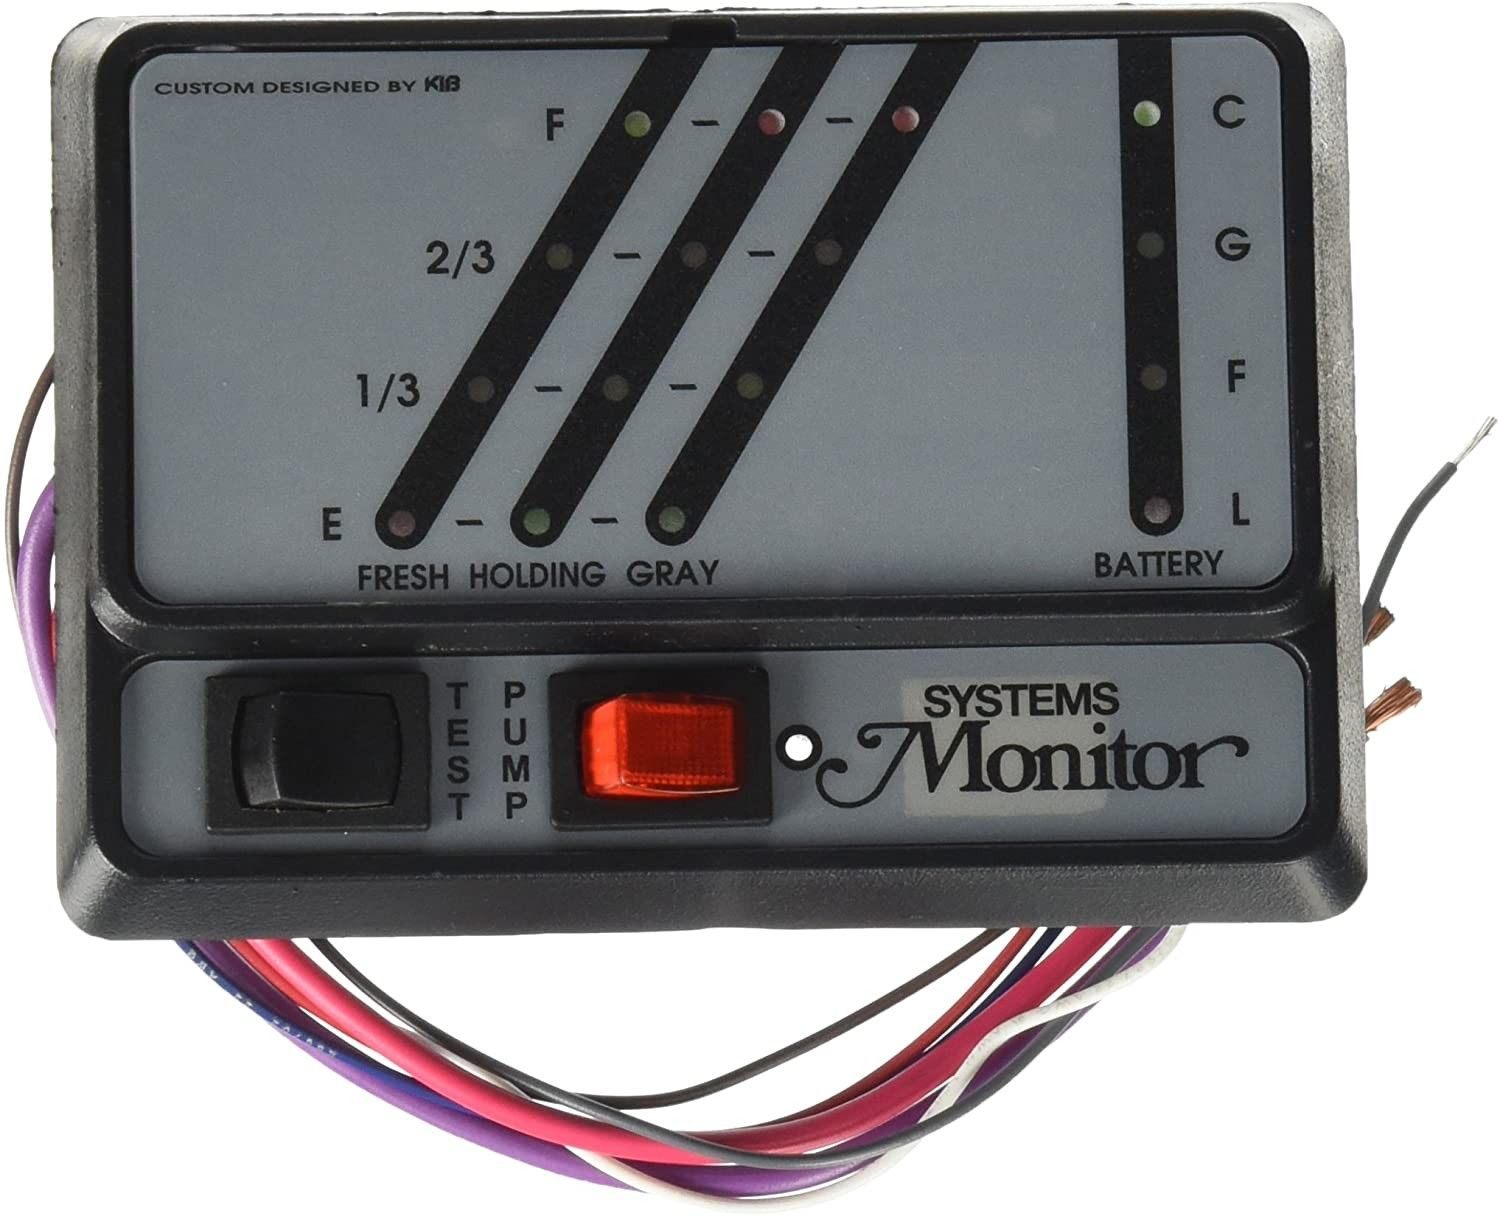 Kib K21 System Monitor Owners Manual In 2020 System Monitor Panel Systems Monitor